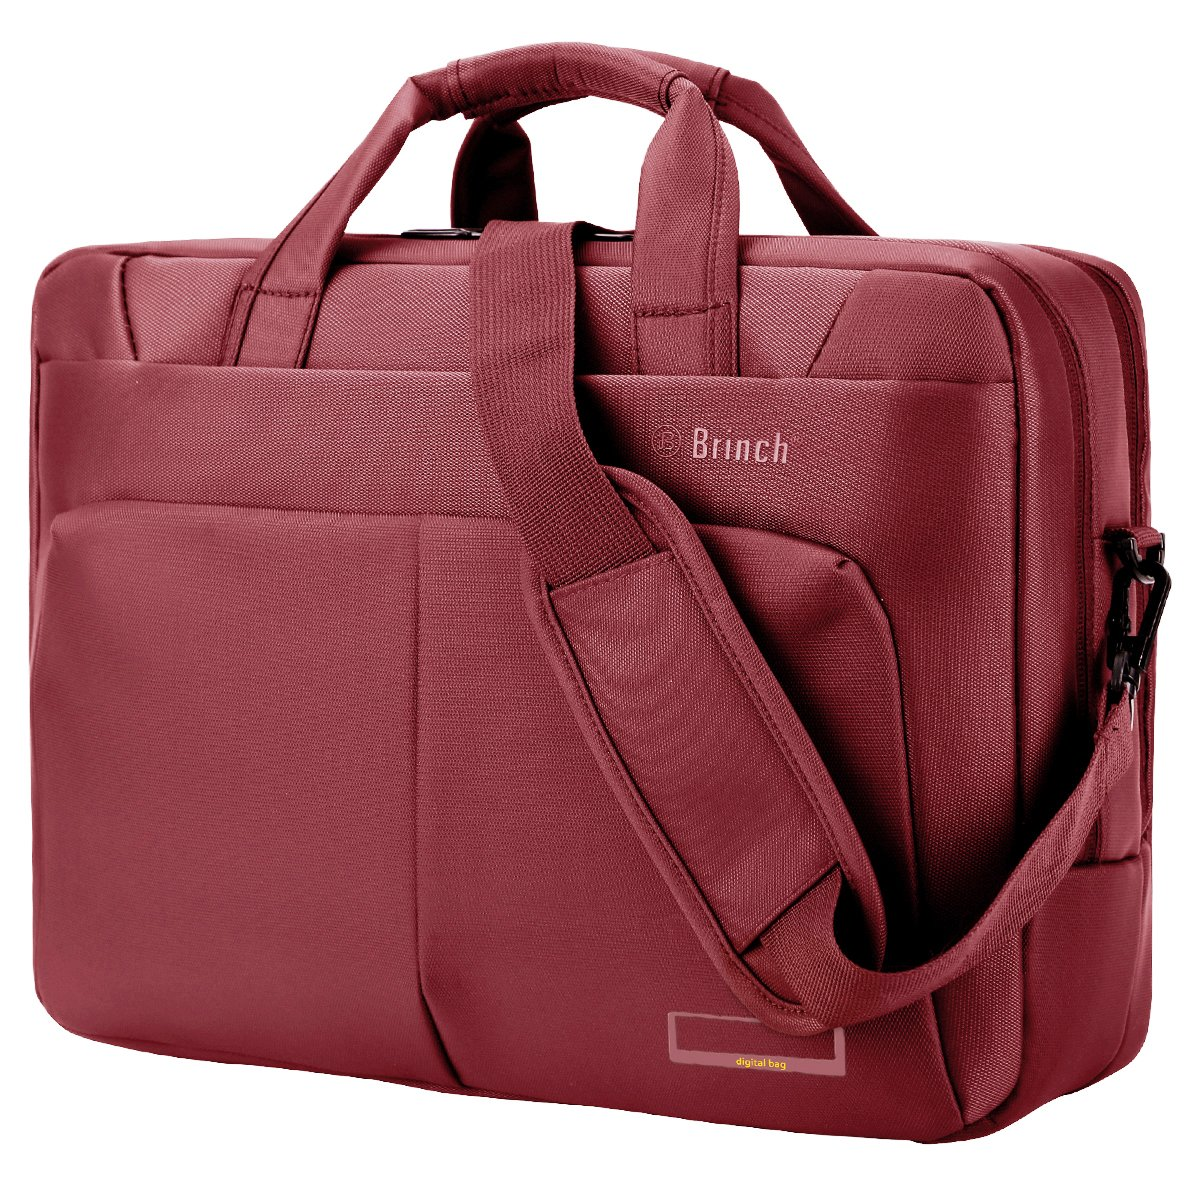 Laptop Bag Briefcase, BRINCH 15.6 inch Stylish Roomy Multi-Compartment Laptop Shoulder Messenger Bag Business Travel Briefcase for Men/Women Fits 15-15.6 inch Laptop/Notebook Computers,Red